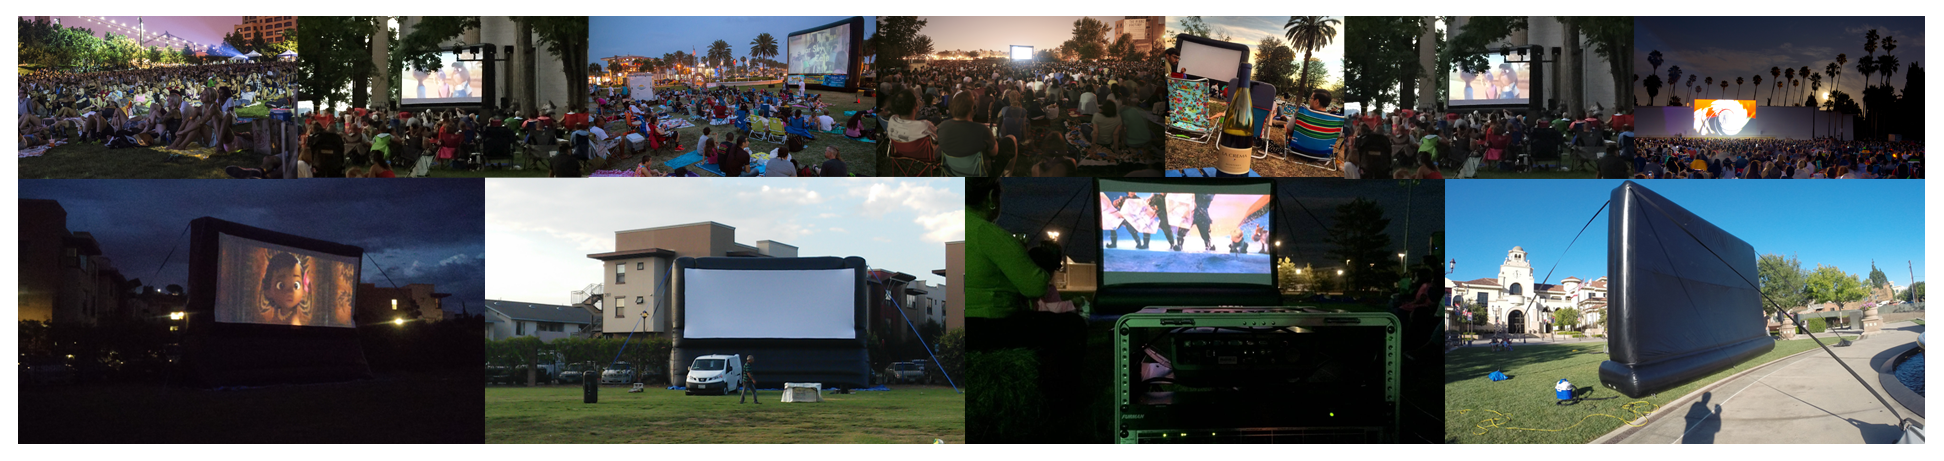 field and park inflatable movie screen rental